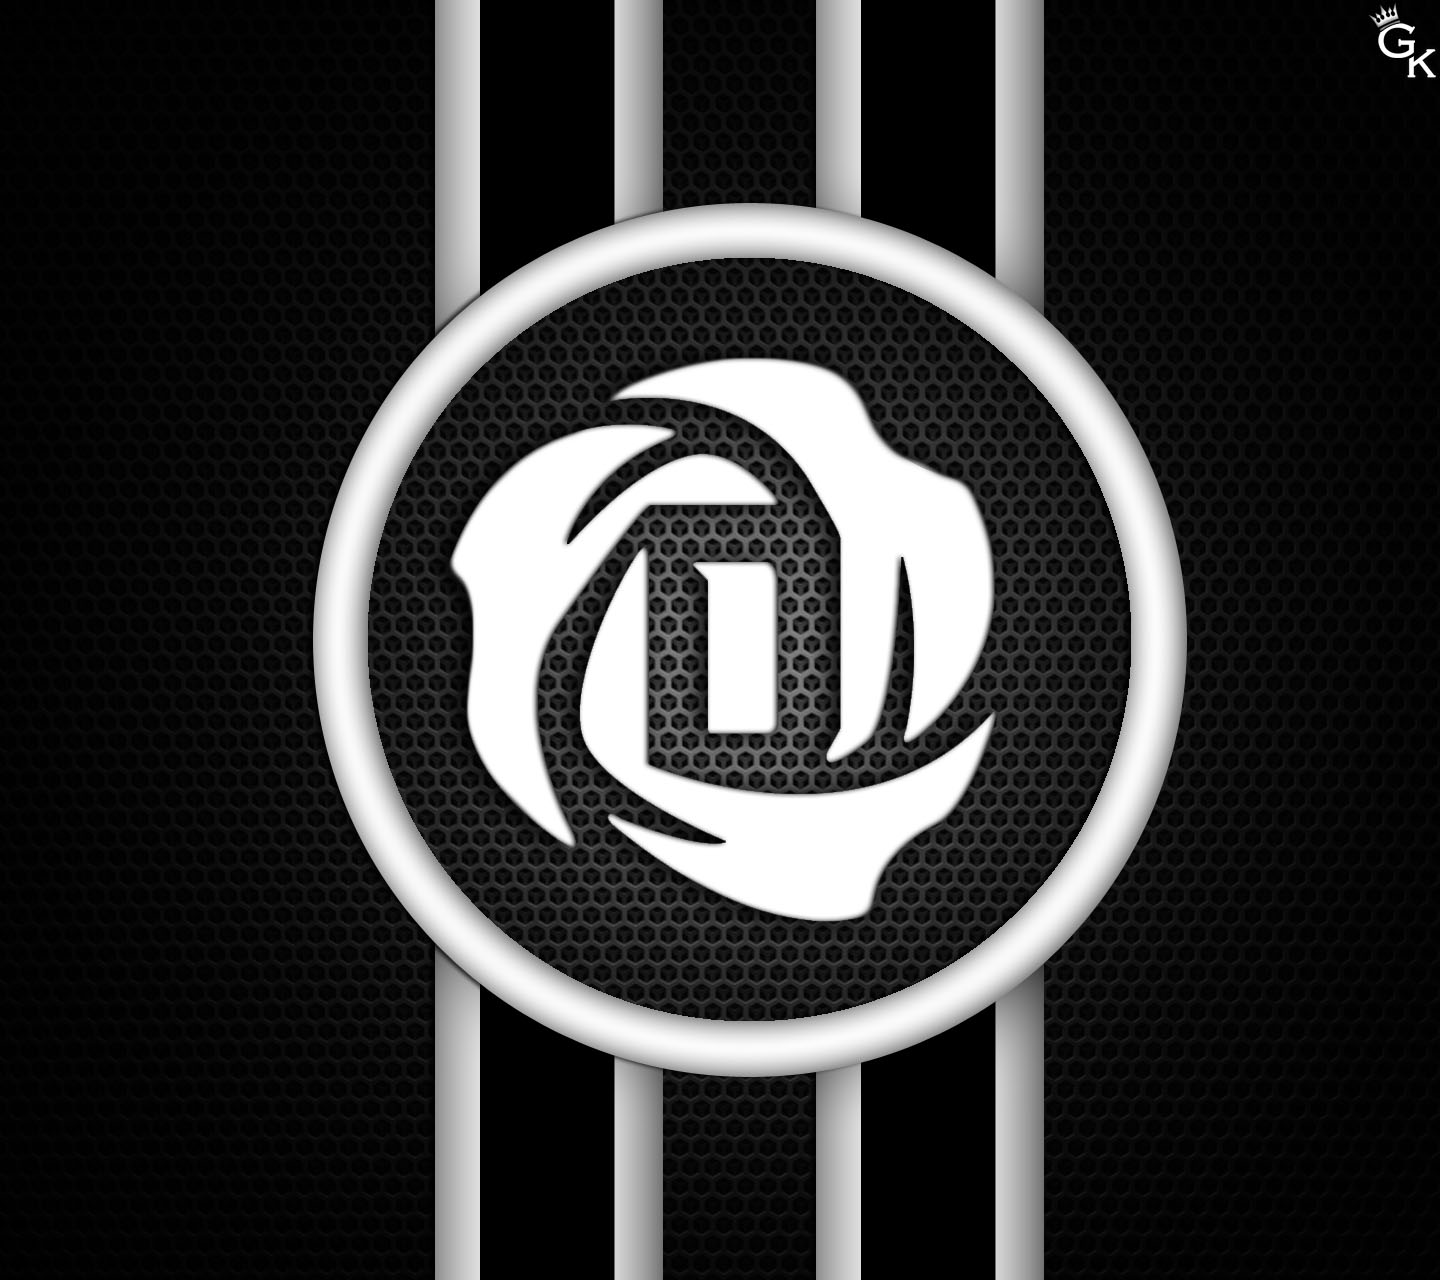 Derrick Rose Emblem GK Phone Wallpaper by SuPeRxJOKER 1440x1280